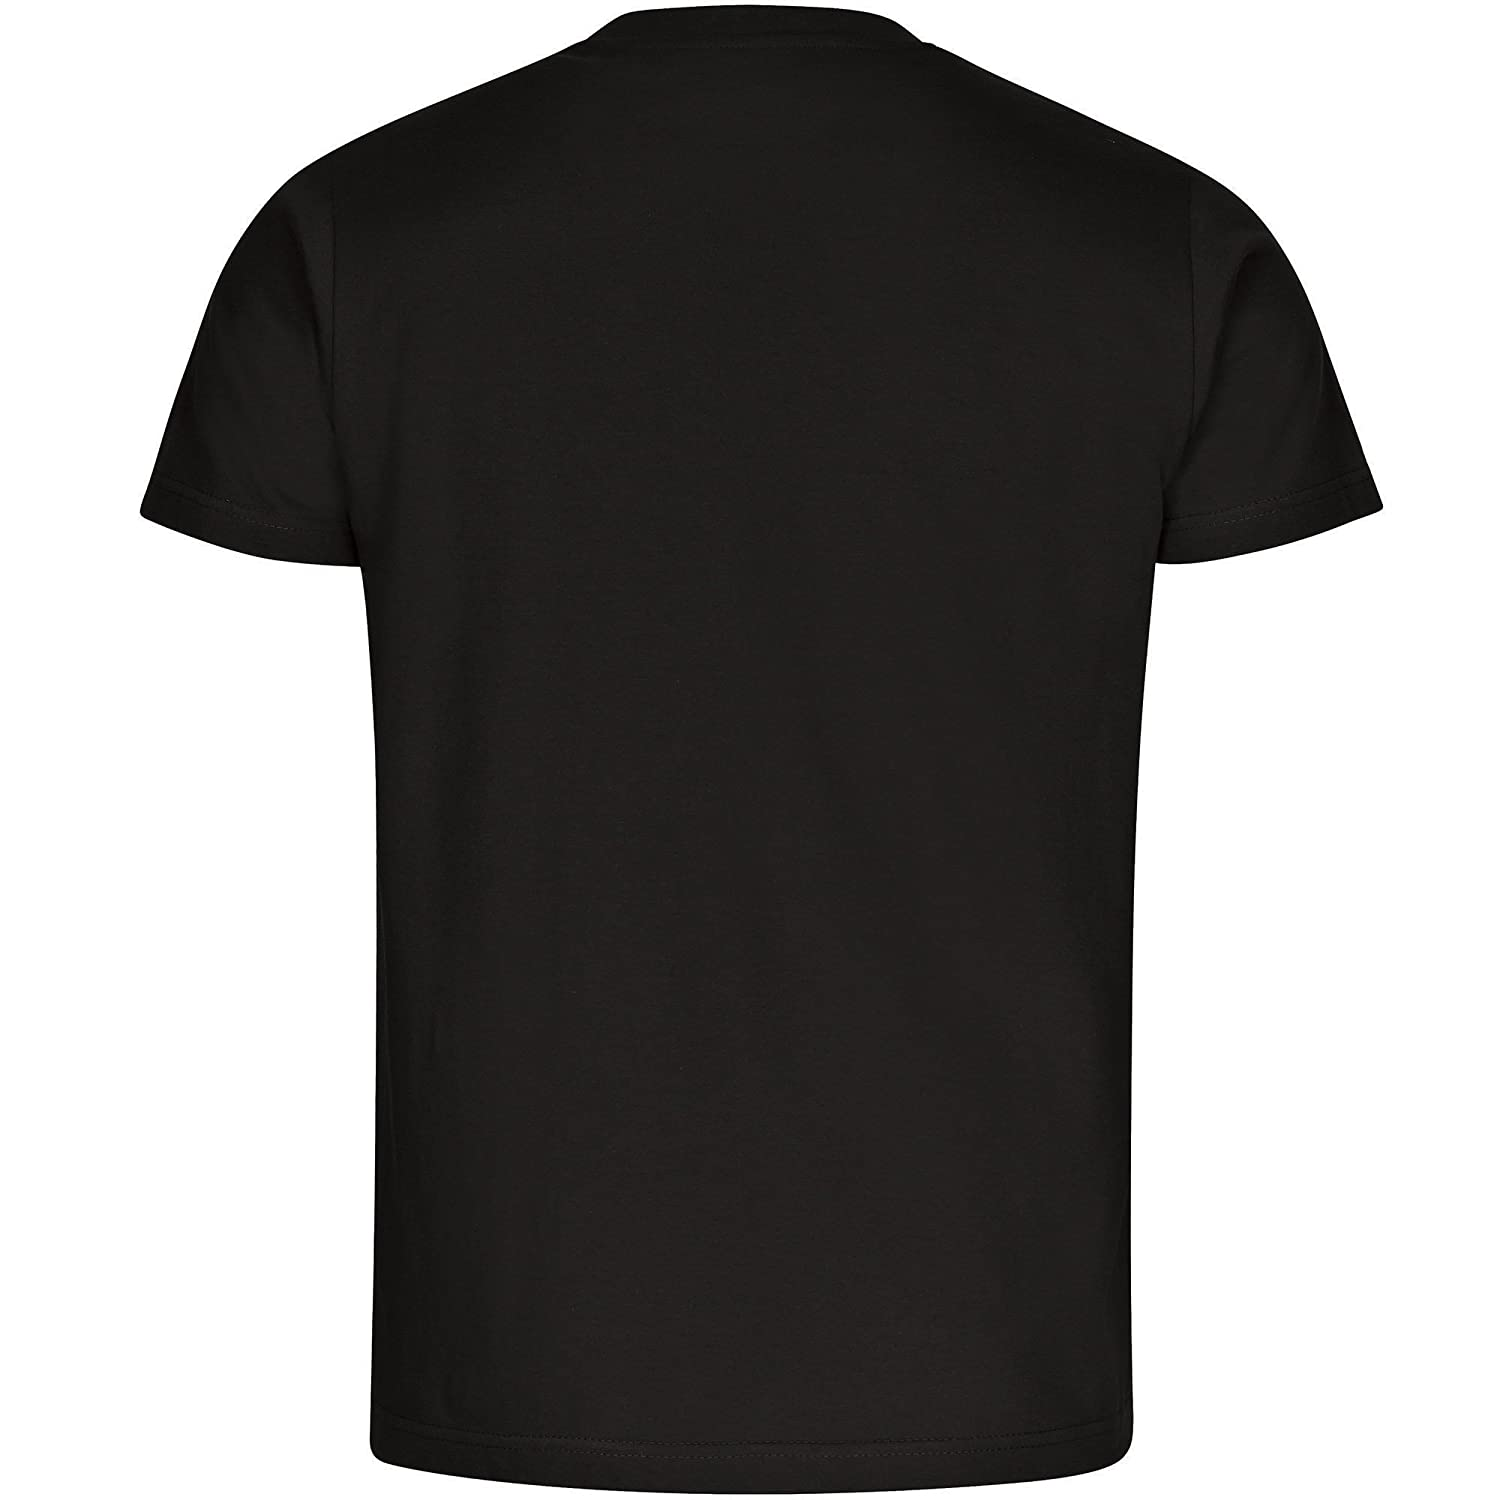 Fin Perfect Men Black T-Shirt Size S to 5XL